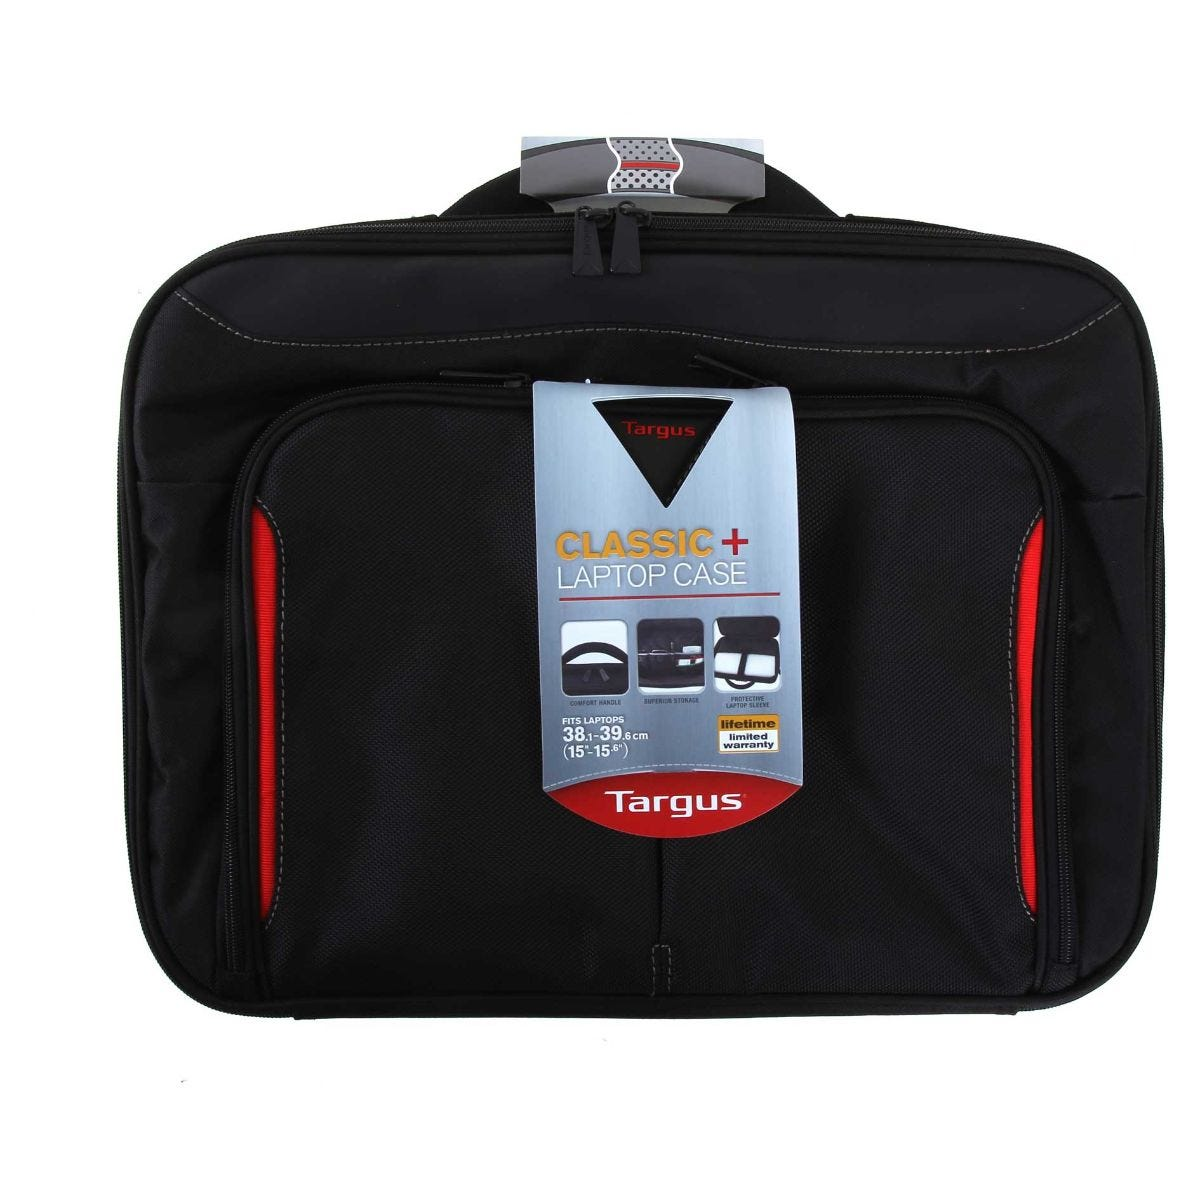 Image of Targus Classic Plus Clamshell Laptop Bag 15-15.6 Inch, Blk/Red